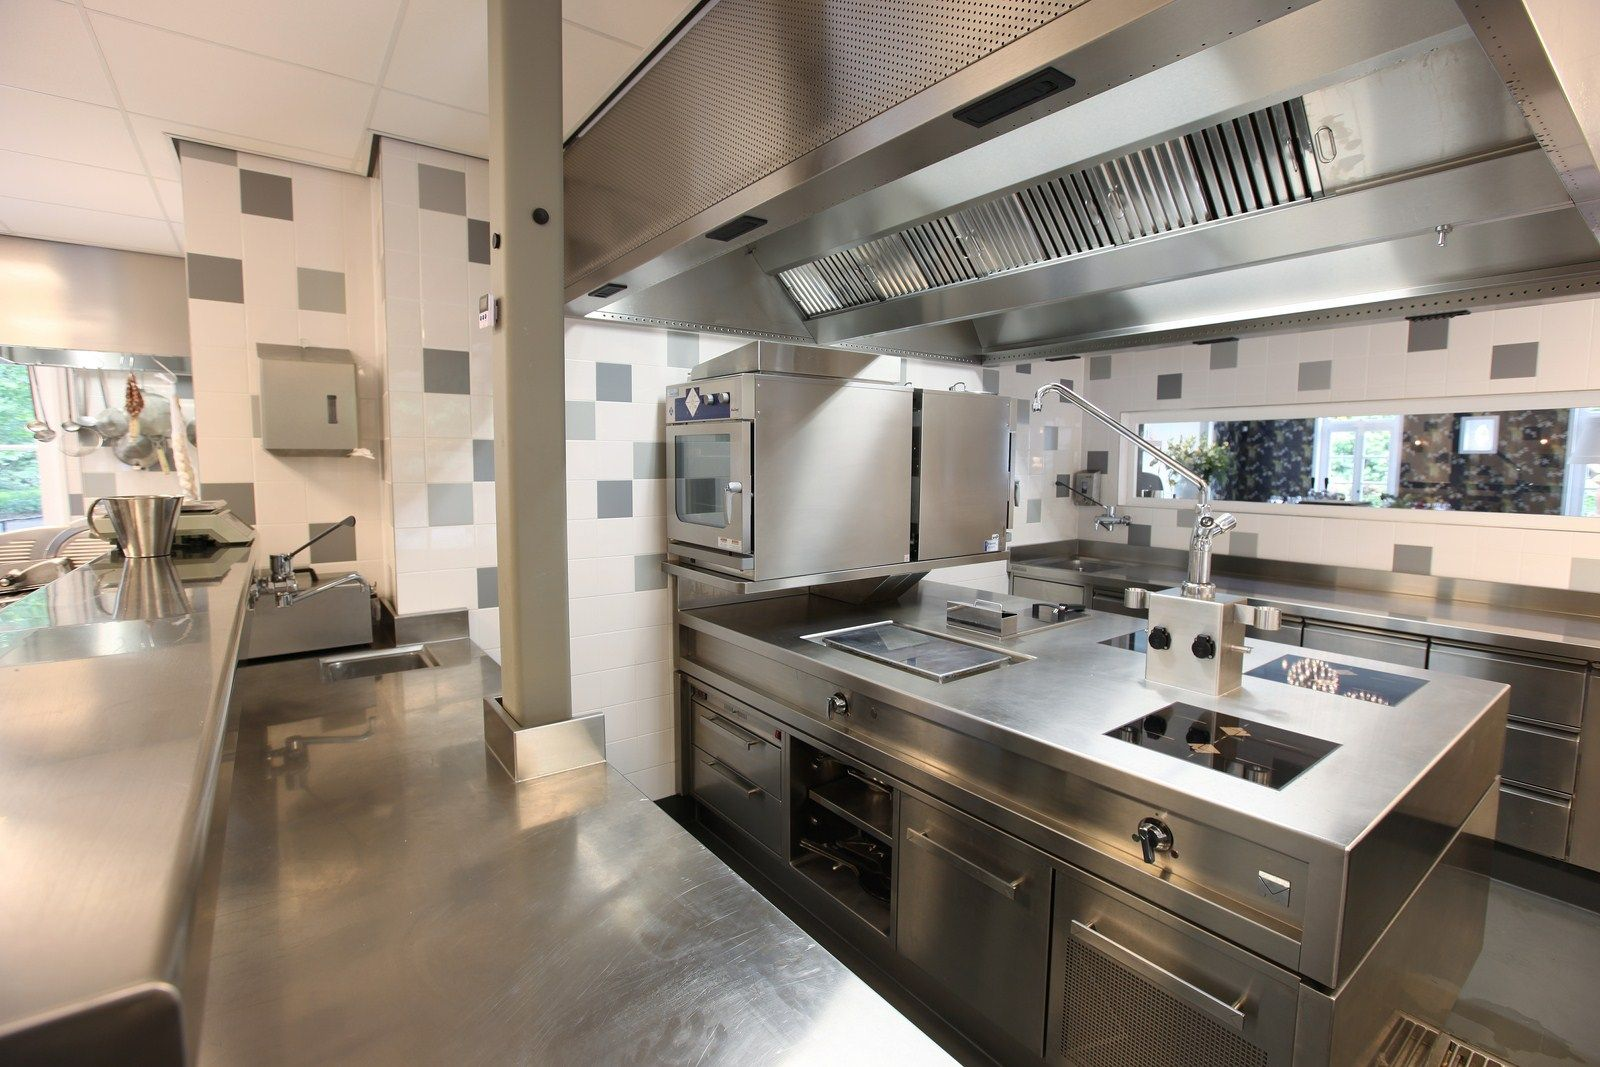 Restaurant Kitchen  Commercial kitchen design, Restaurant kitchen